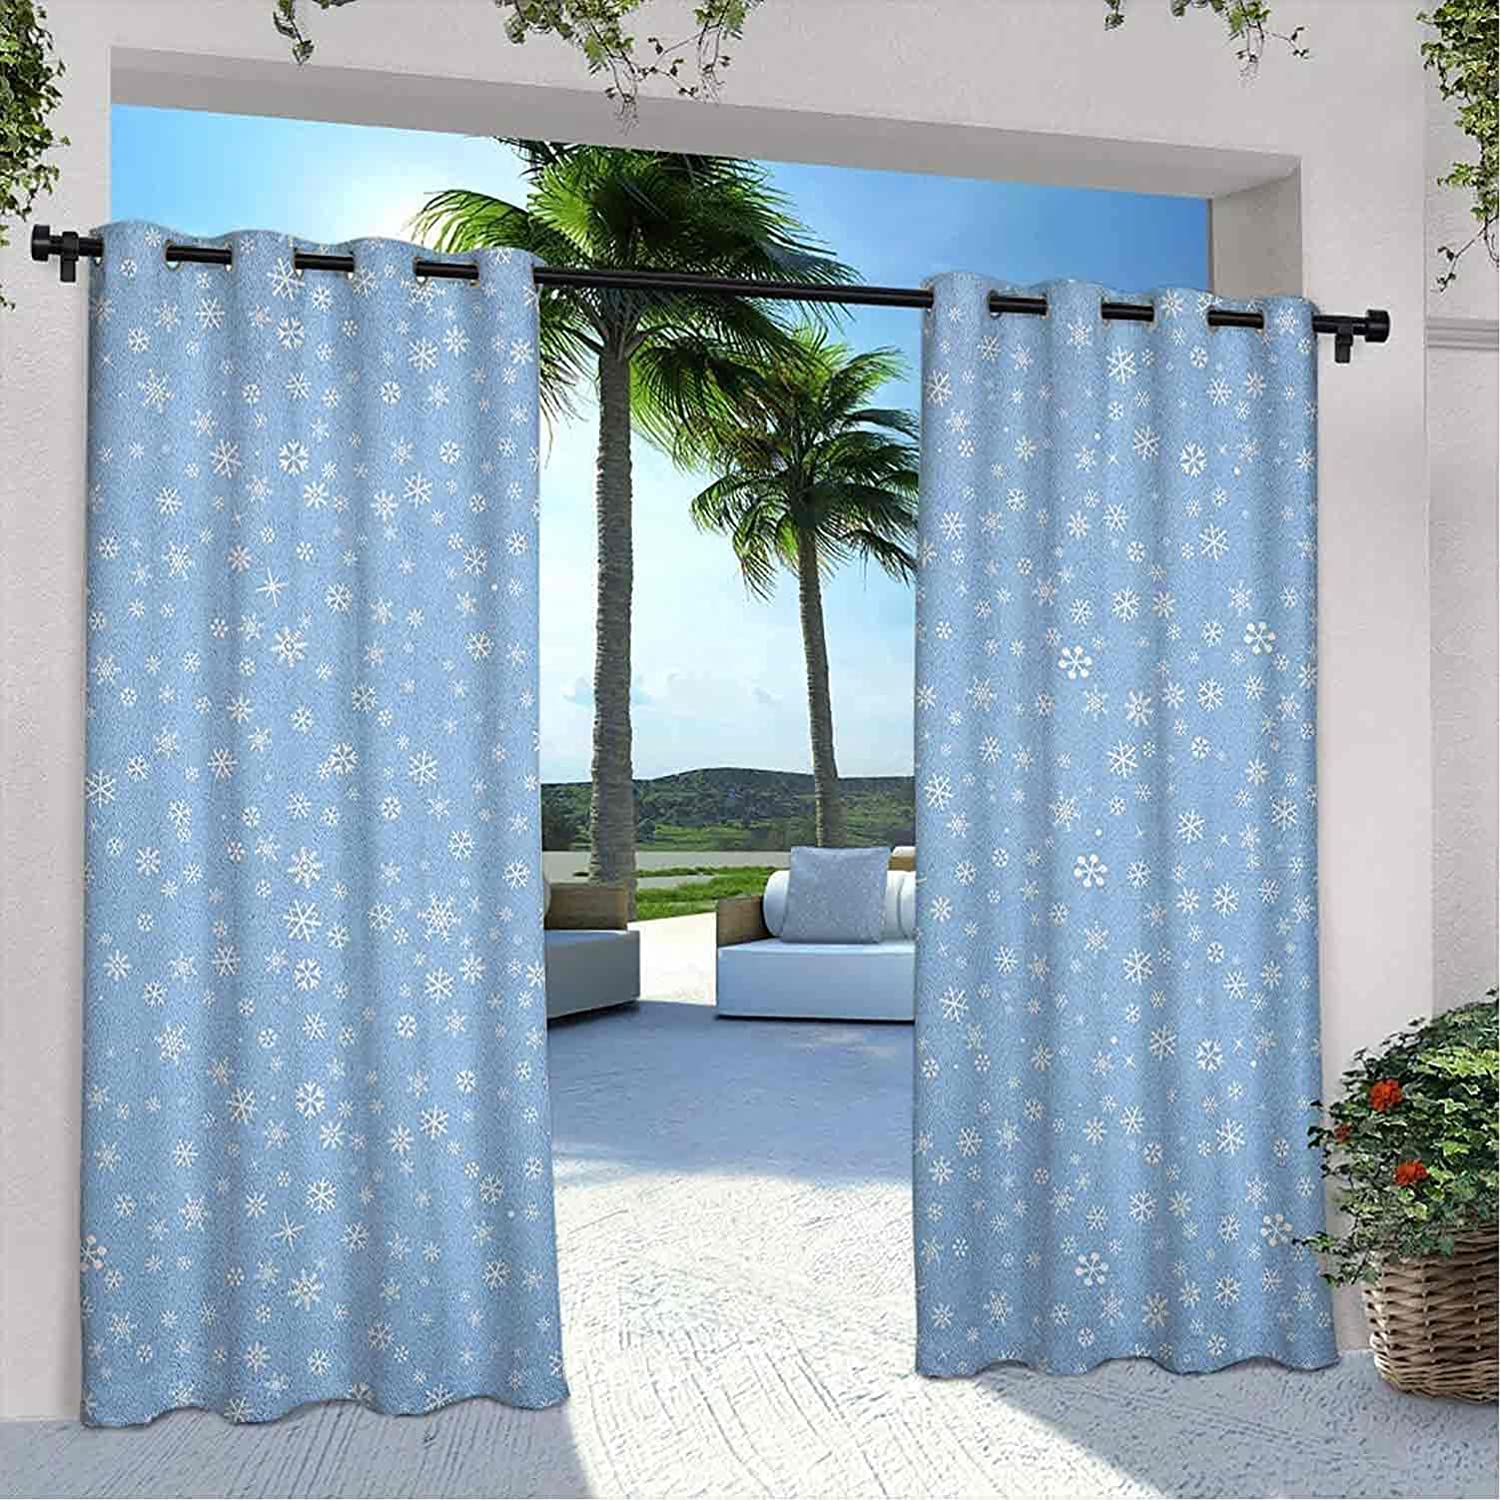 Outdoor Privacy Winter Curtain Cute Snowflakes Falling Brand Cheap Sale Venue Very popular f Little